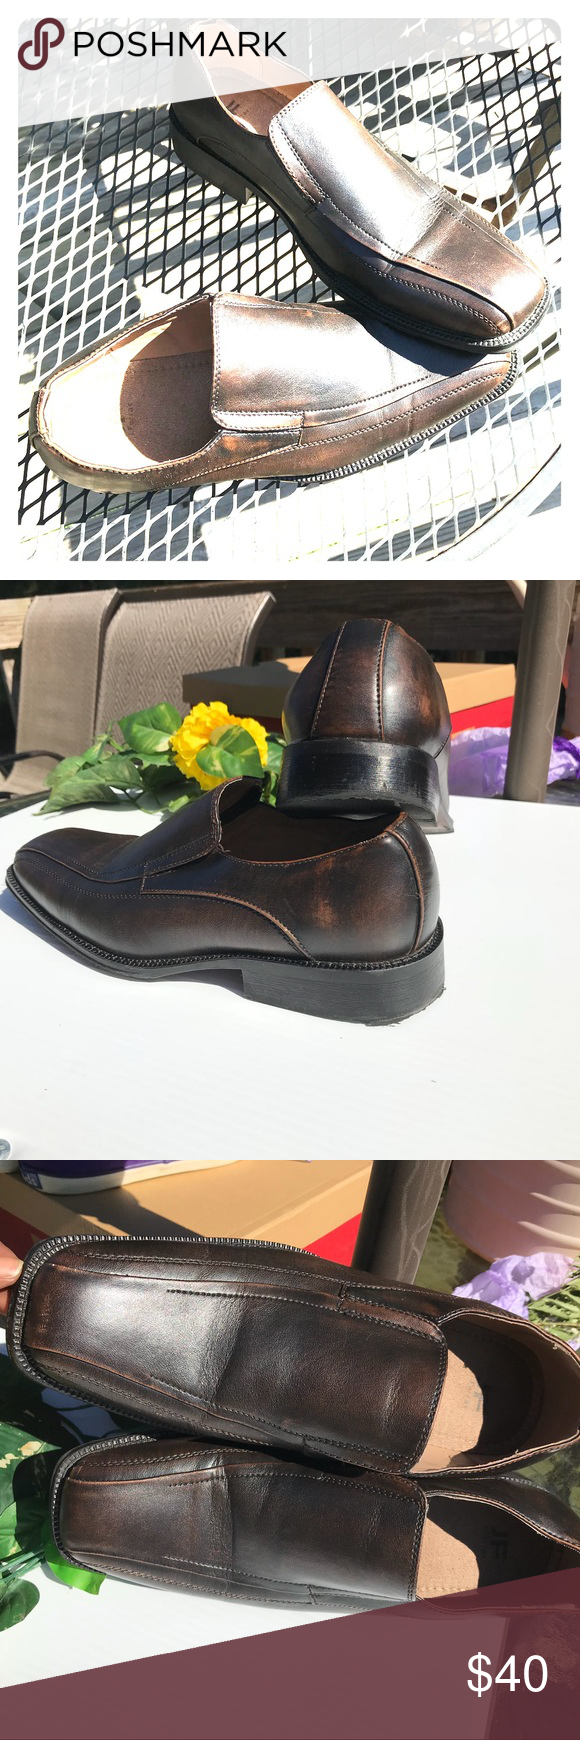 0029203c5edc J. Ferrar Brown Men Slide-on Loafer Shoe Size 8 J. Farrar Brown Men  Business shoe size 8. Shoes are preowned but only worn twice for a wedding  and ...